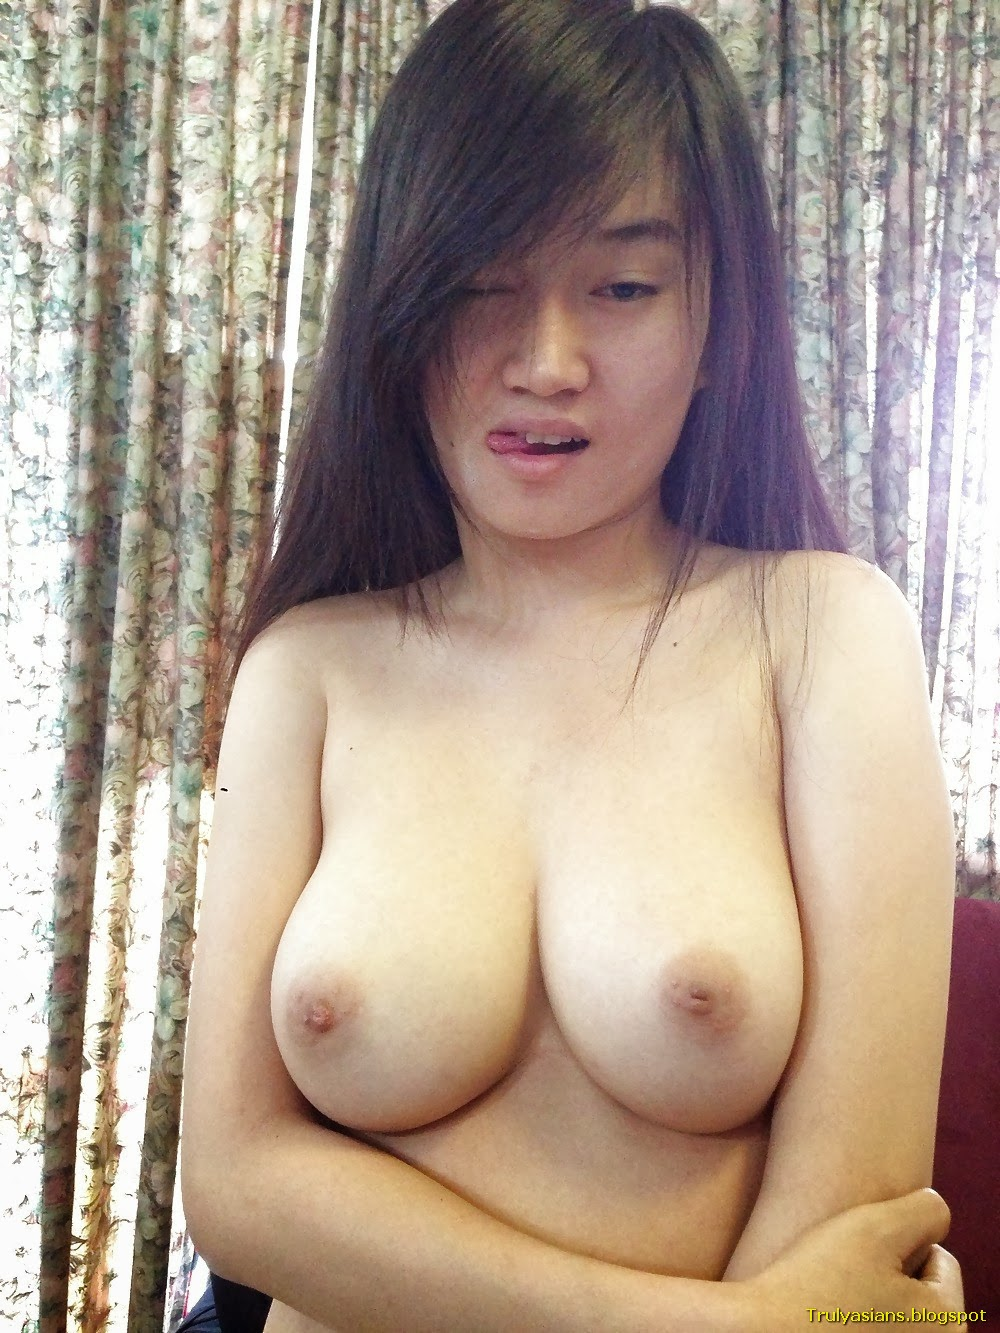 With you Singaporean girls big tits agree was